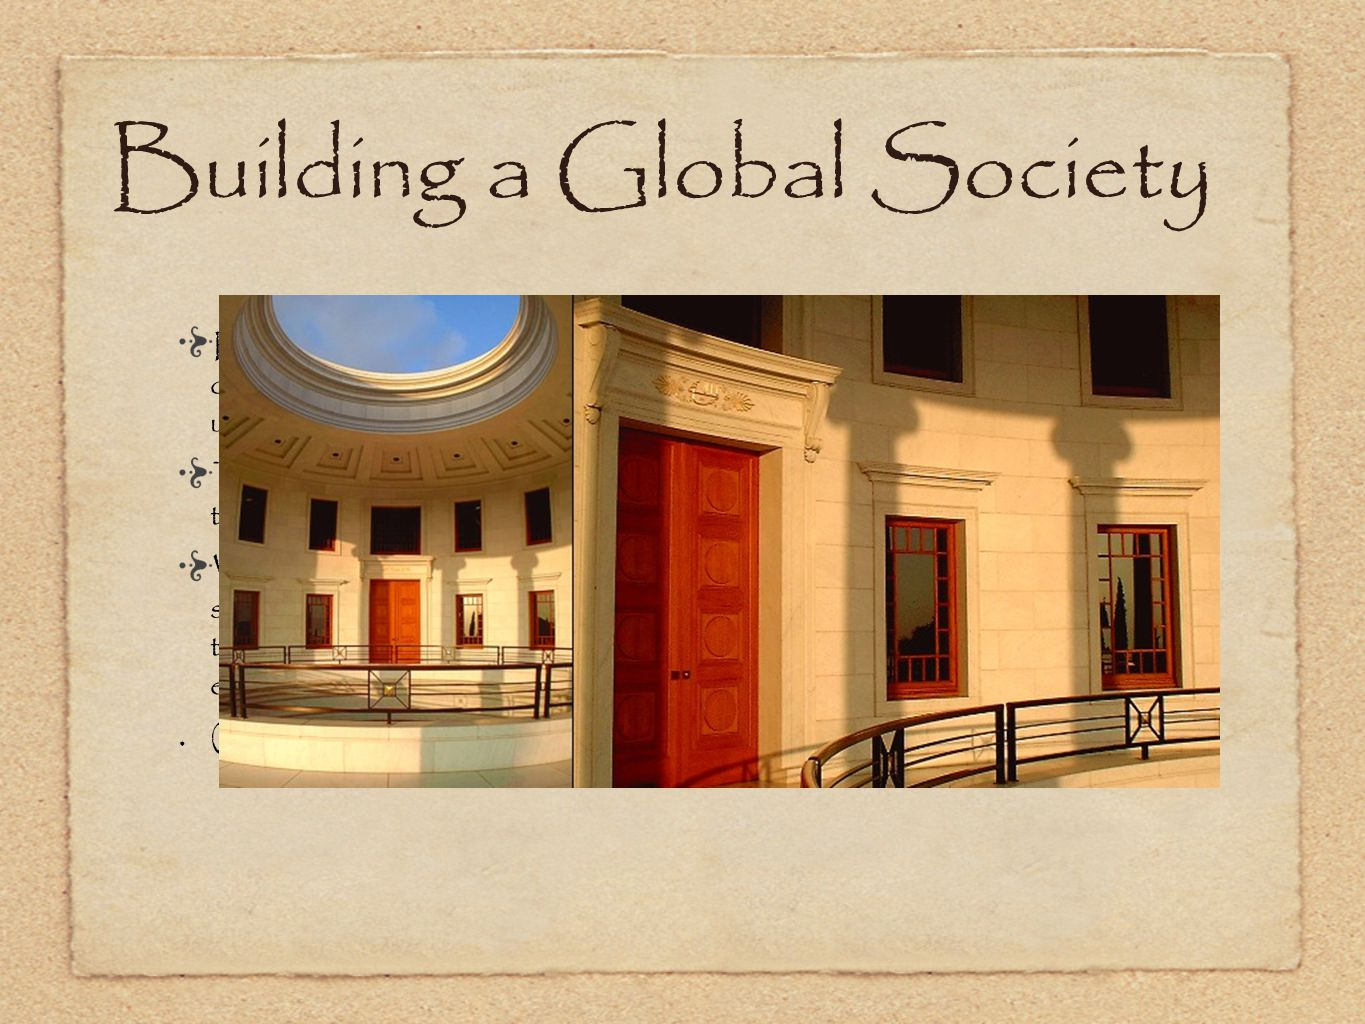 Building a Global Society Realization of the uniqueness of what Bahá'u'lláh has brought into being opens the imagination to the contribution that the